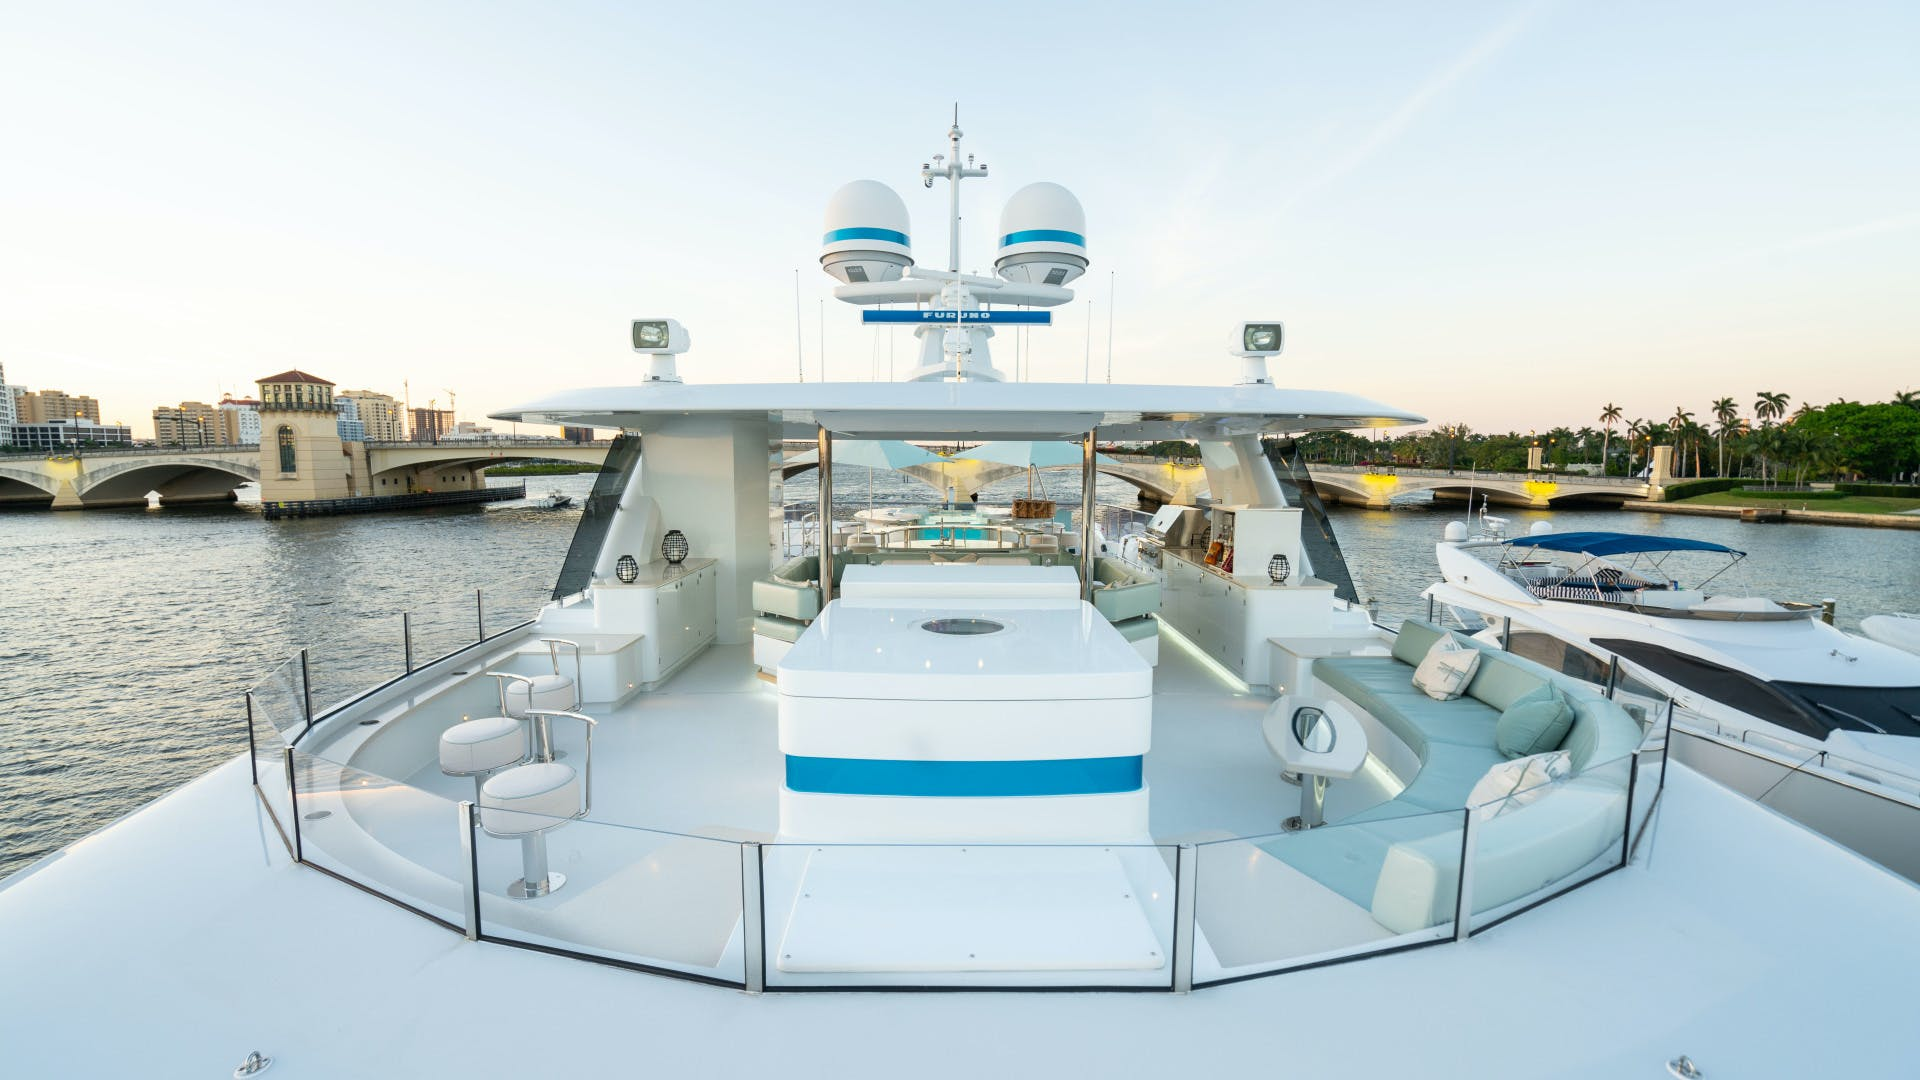 2016 IAG 133' Motor Yacht SERENITY   Picture 8 of 120